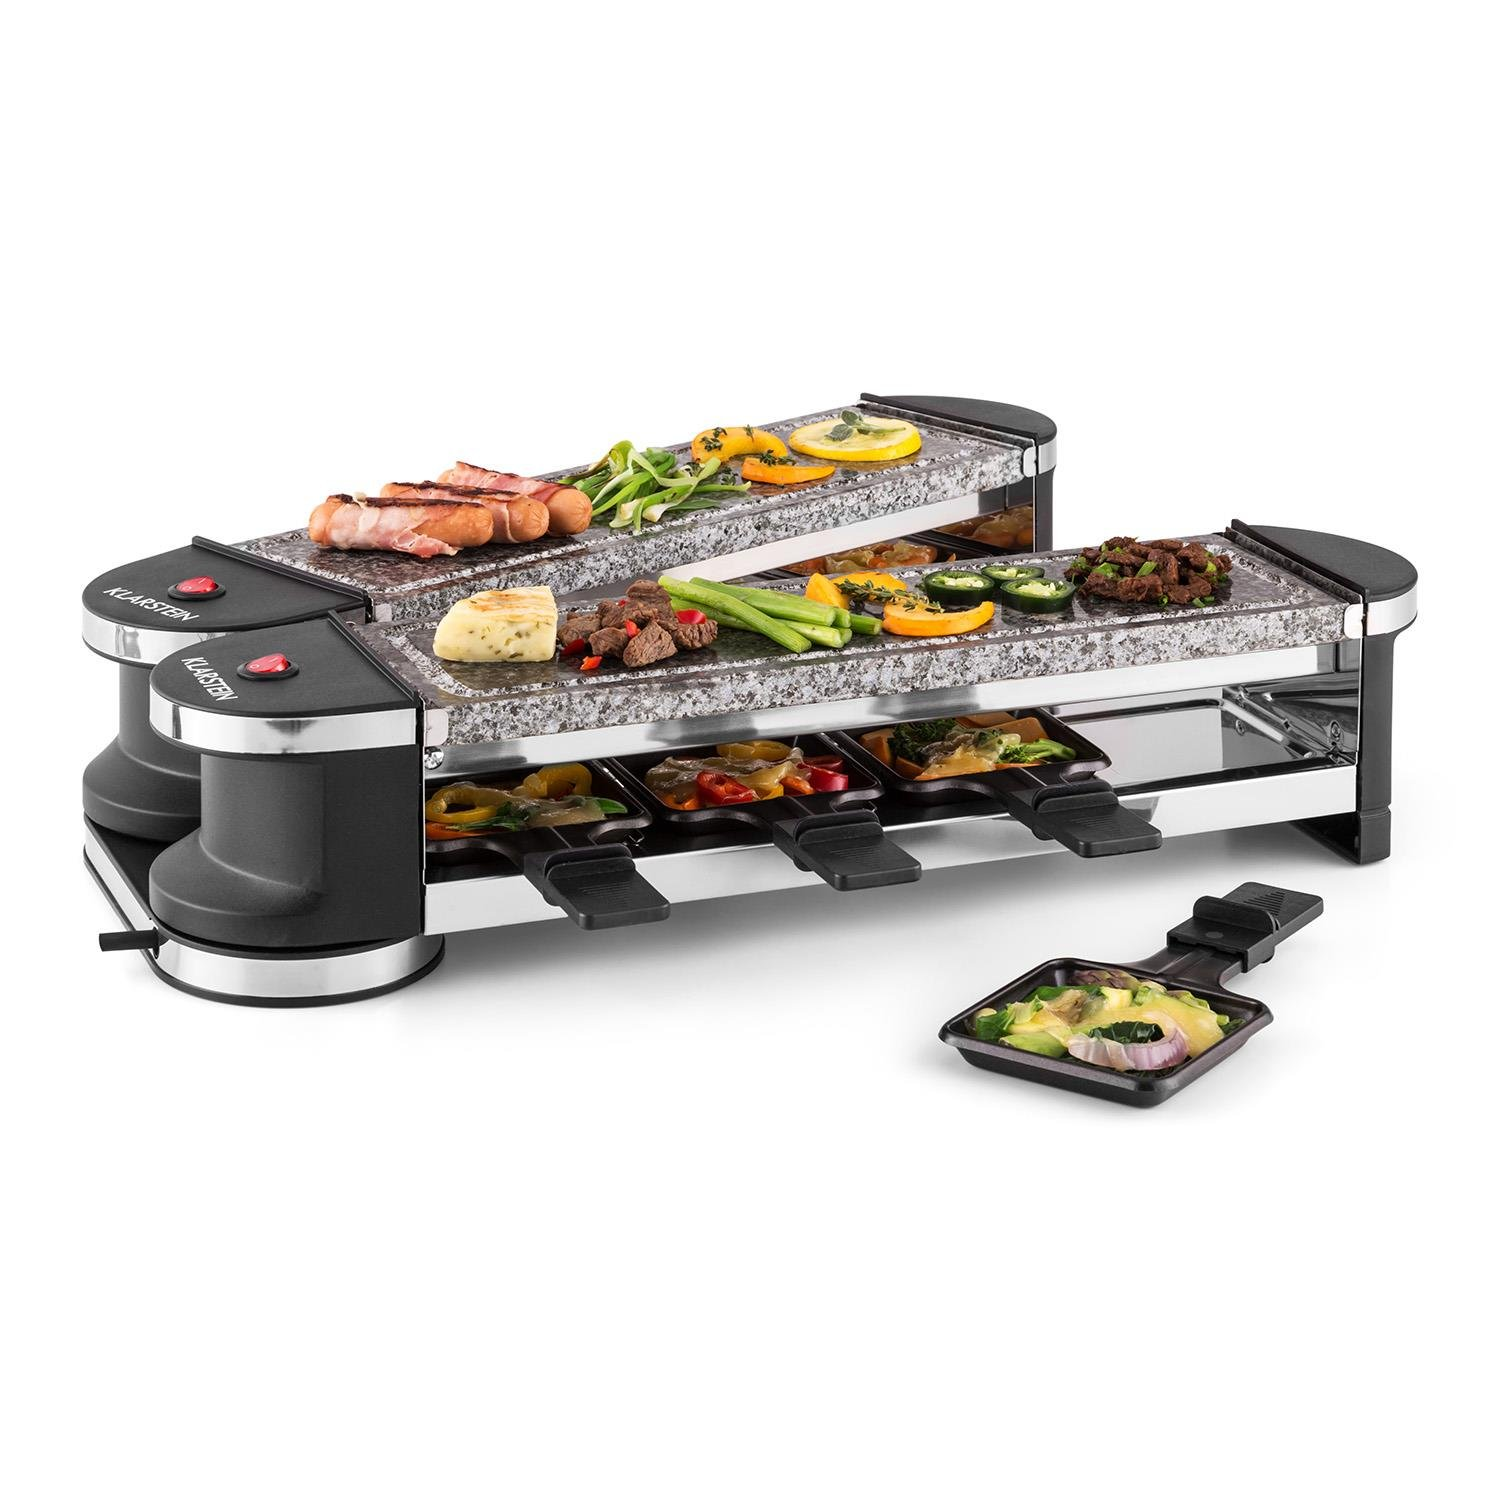 Klarstein Tenderloin 100 Raclette Table Grill Party Grill 1200 Watt Suitable for 8 Persons 8 pans & 1 Wooden Spatula Non-stick Coating Free Positioning 2 x Natural Stone Plates Black